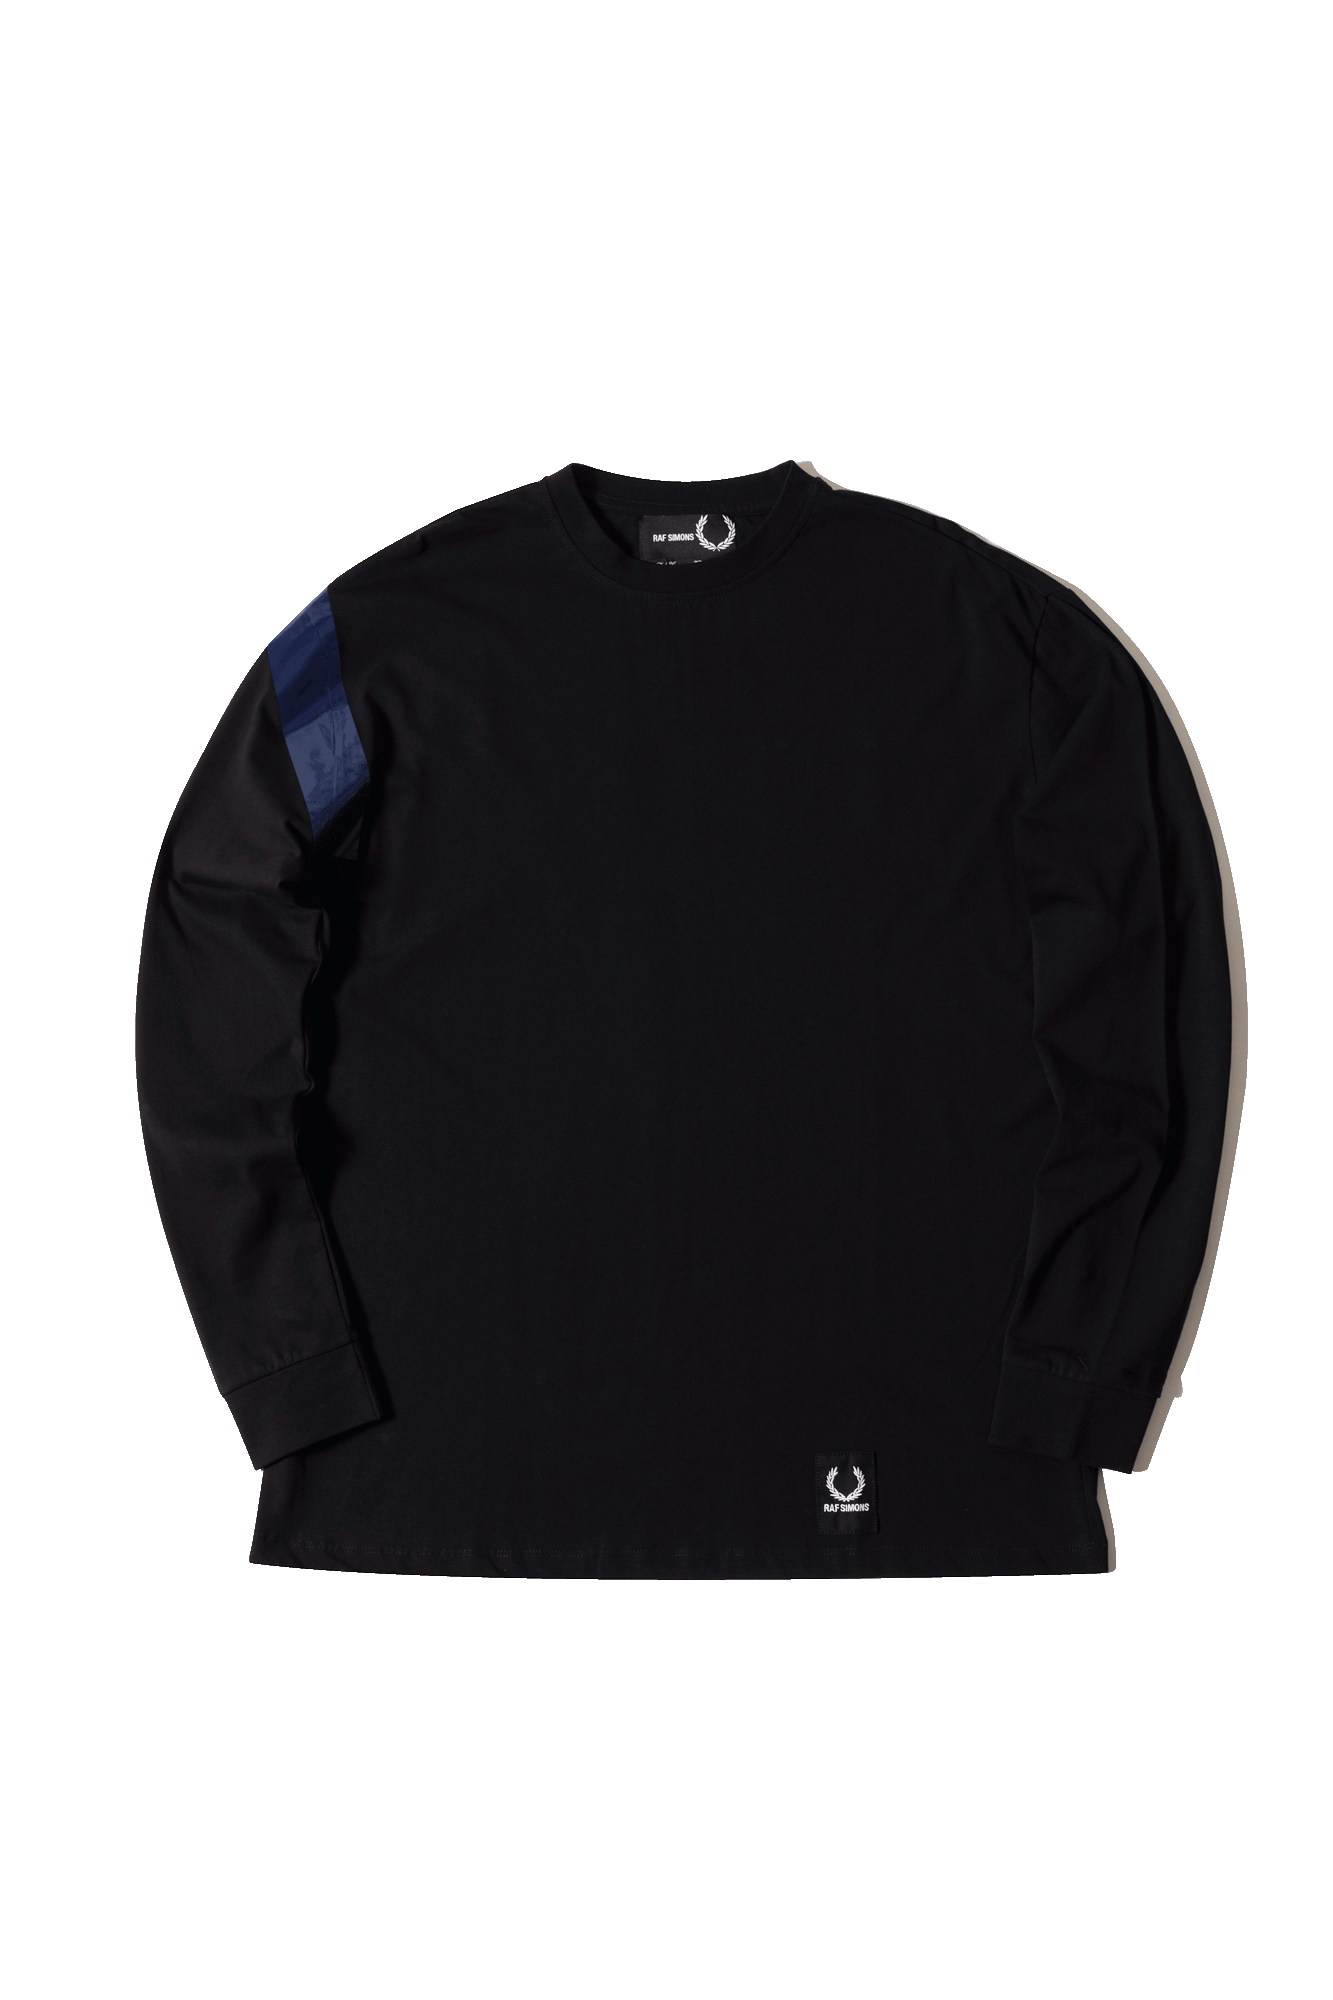 Raf Simons Tape Detail Long Sleeve T-Shirt Black